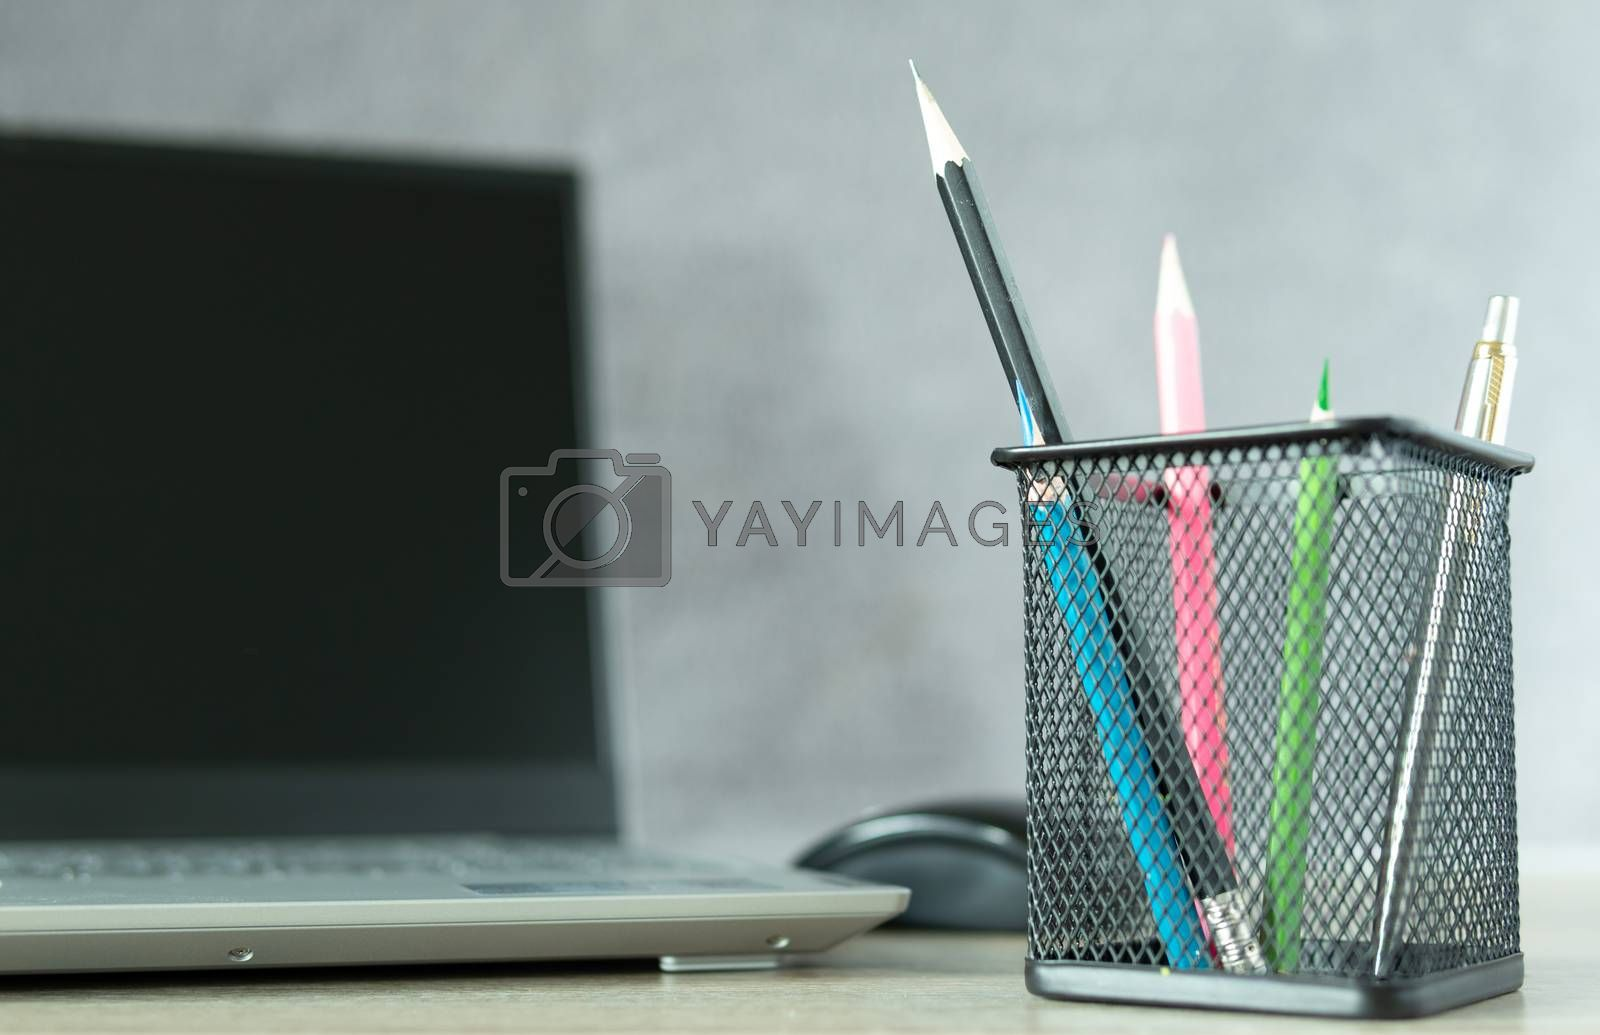 Black basket with blue pencil Ready to use with other colored pencils And notebook computers placed blurred behind on the desk, office equipment at work or at home. Future business concepts